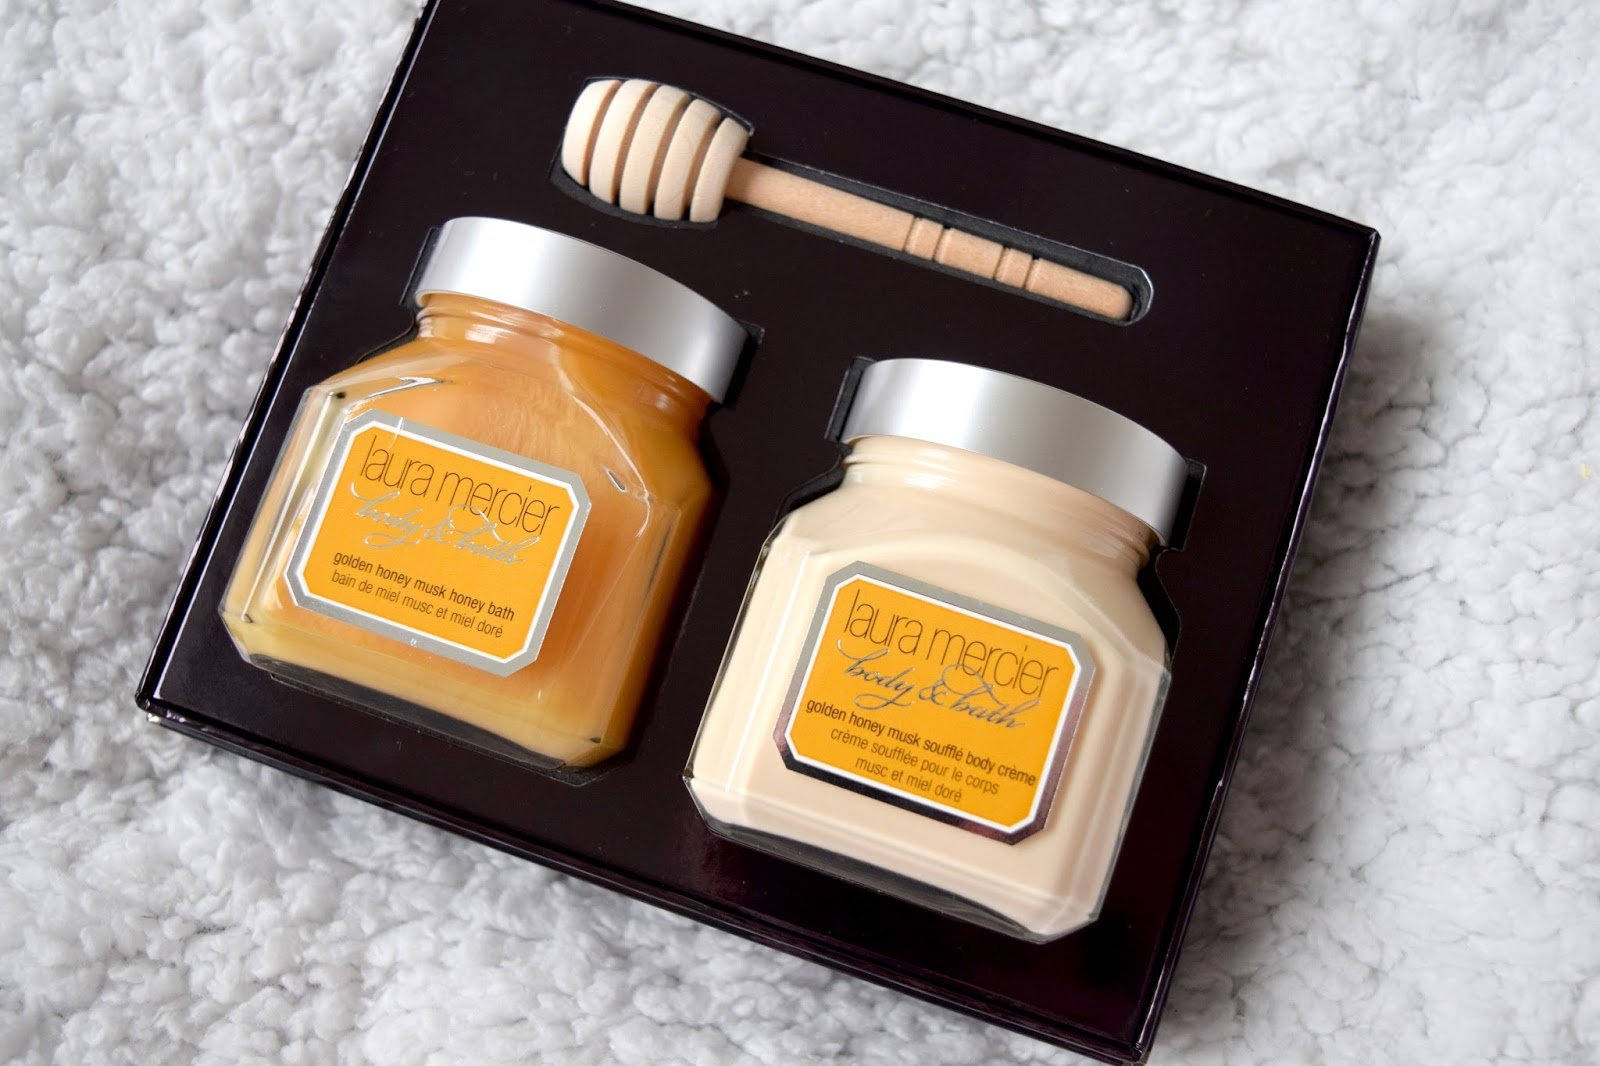 Laura Mercier Golden Honey Musk Bath and Body Duo